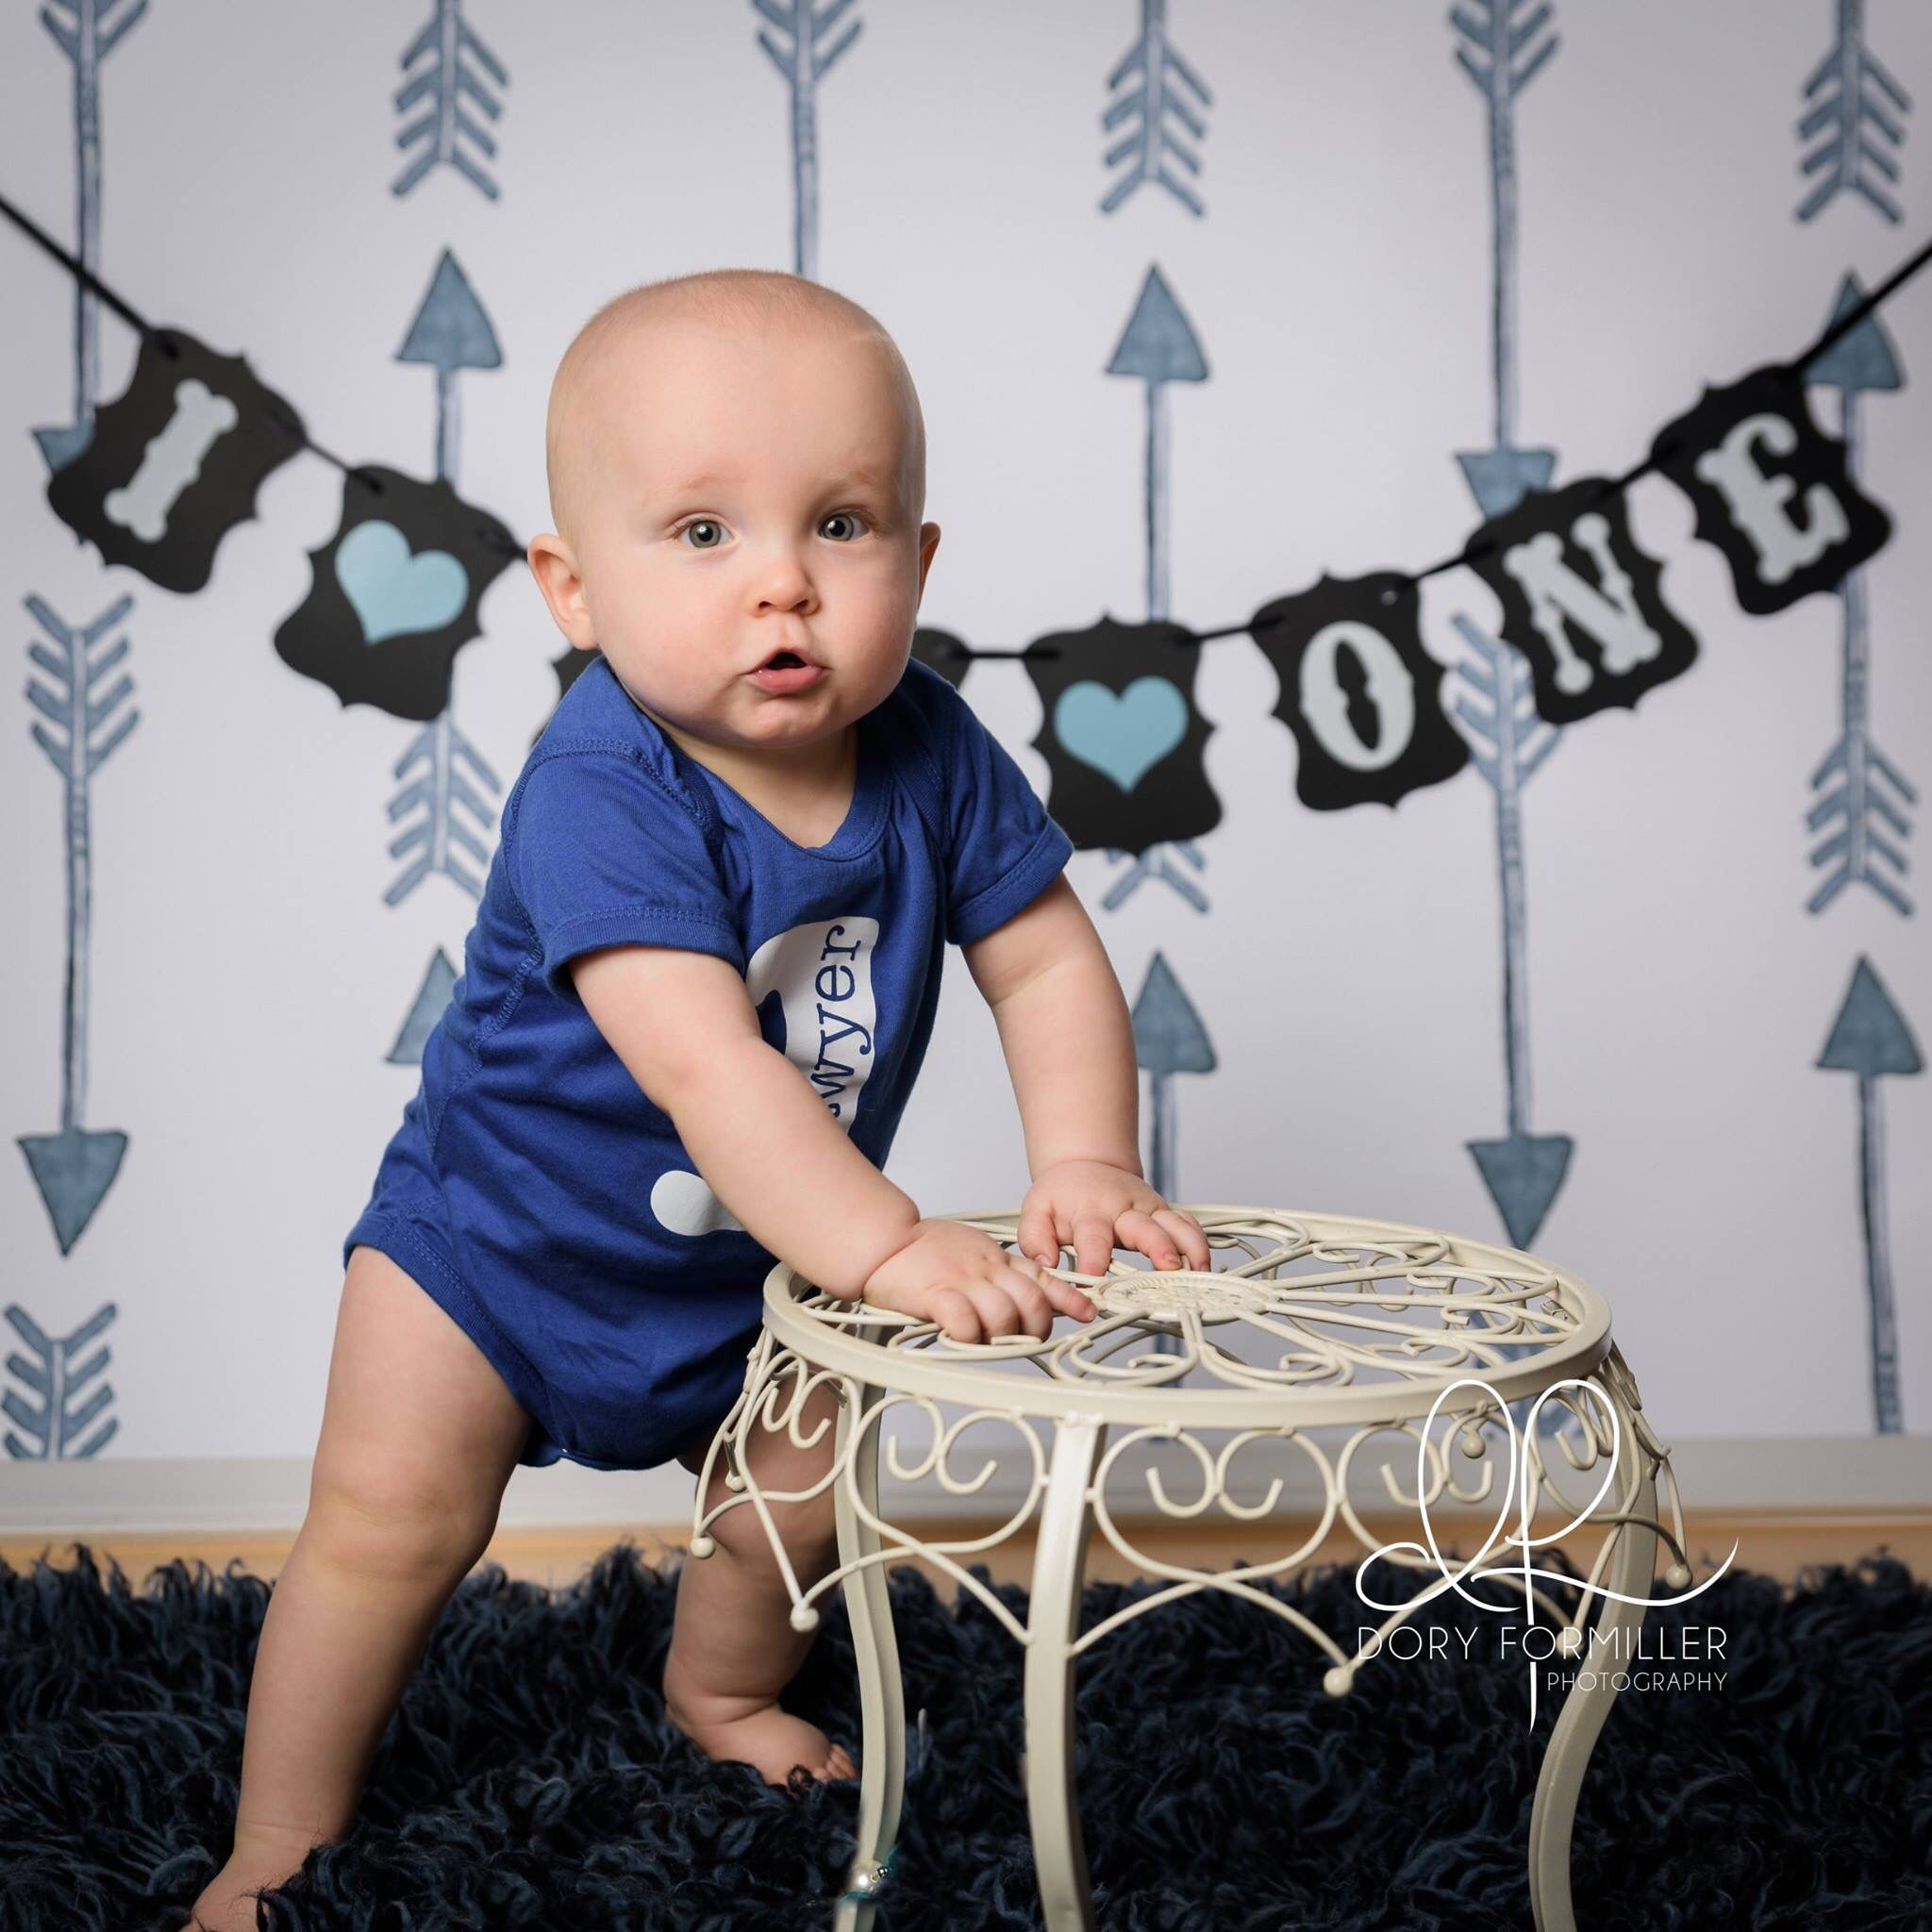 Baby first birthday photo session, little boy birthday photo session